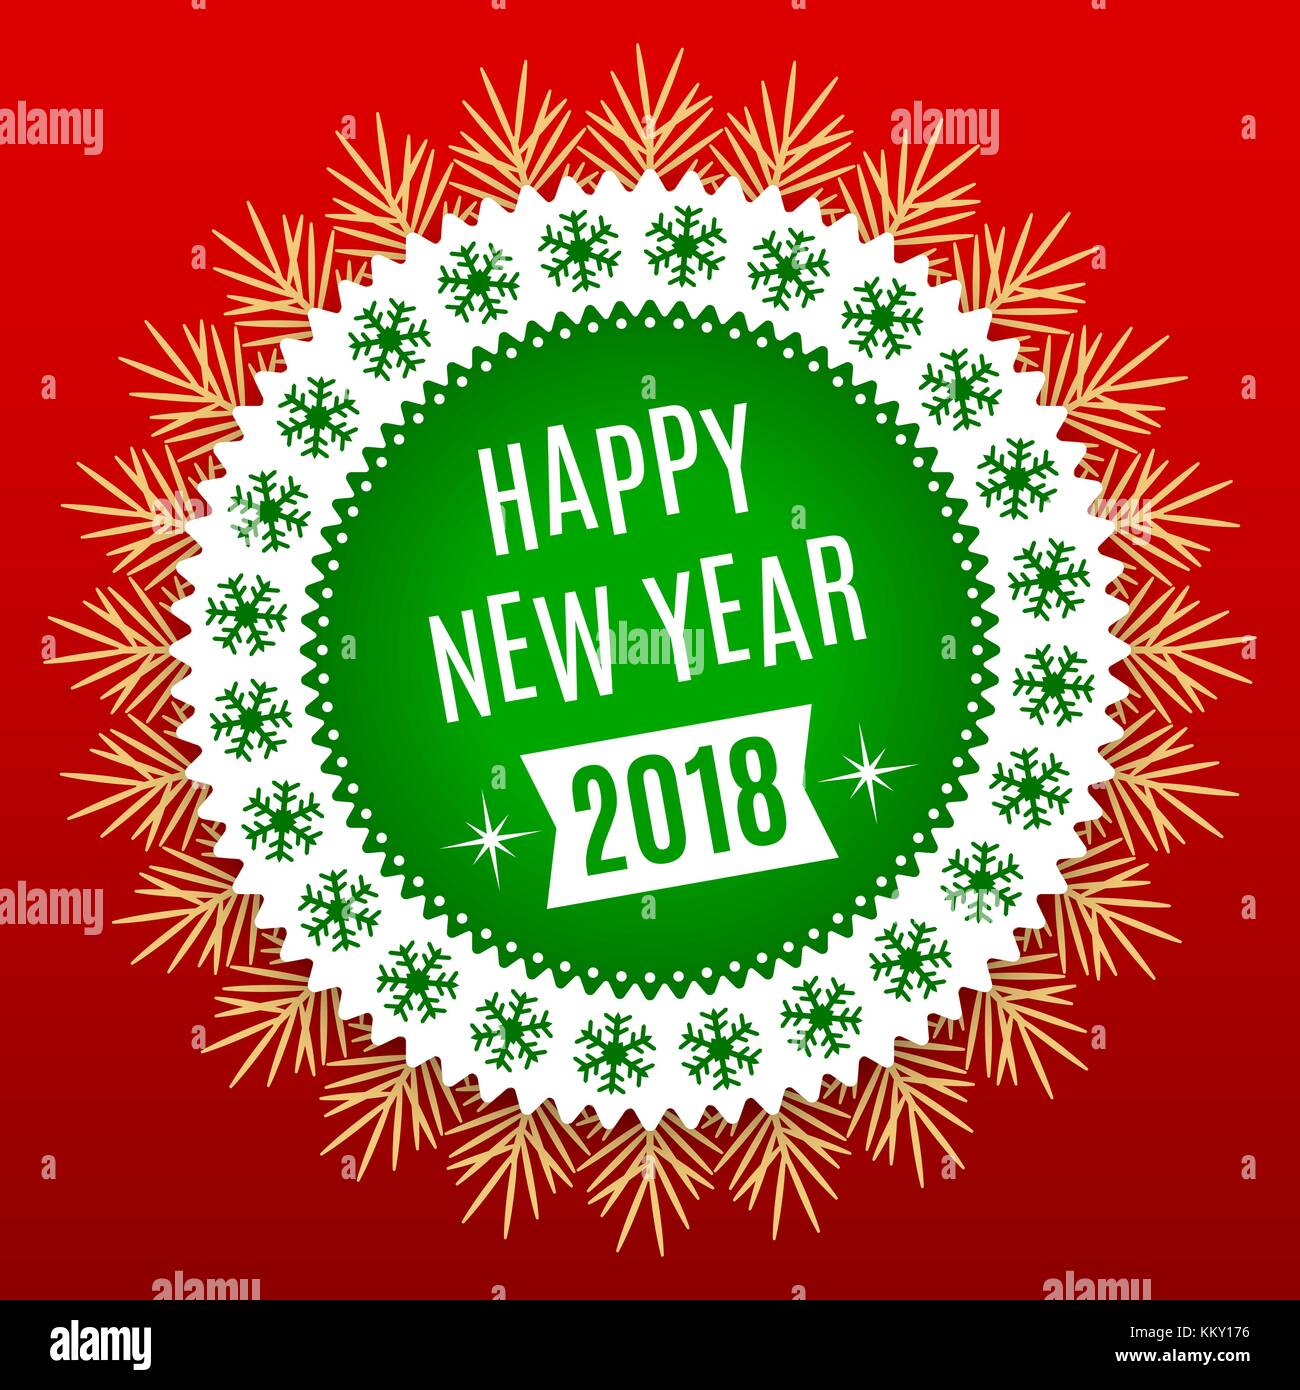 Happy new year 2018 stock vector images alamy new year 2018 holiday round banner of happy new year 2018 in green white kristyandbryce Image collections